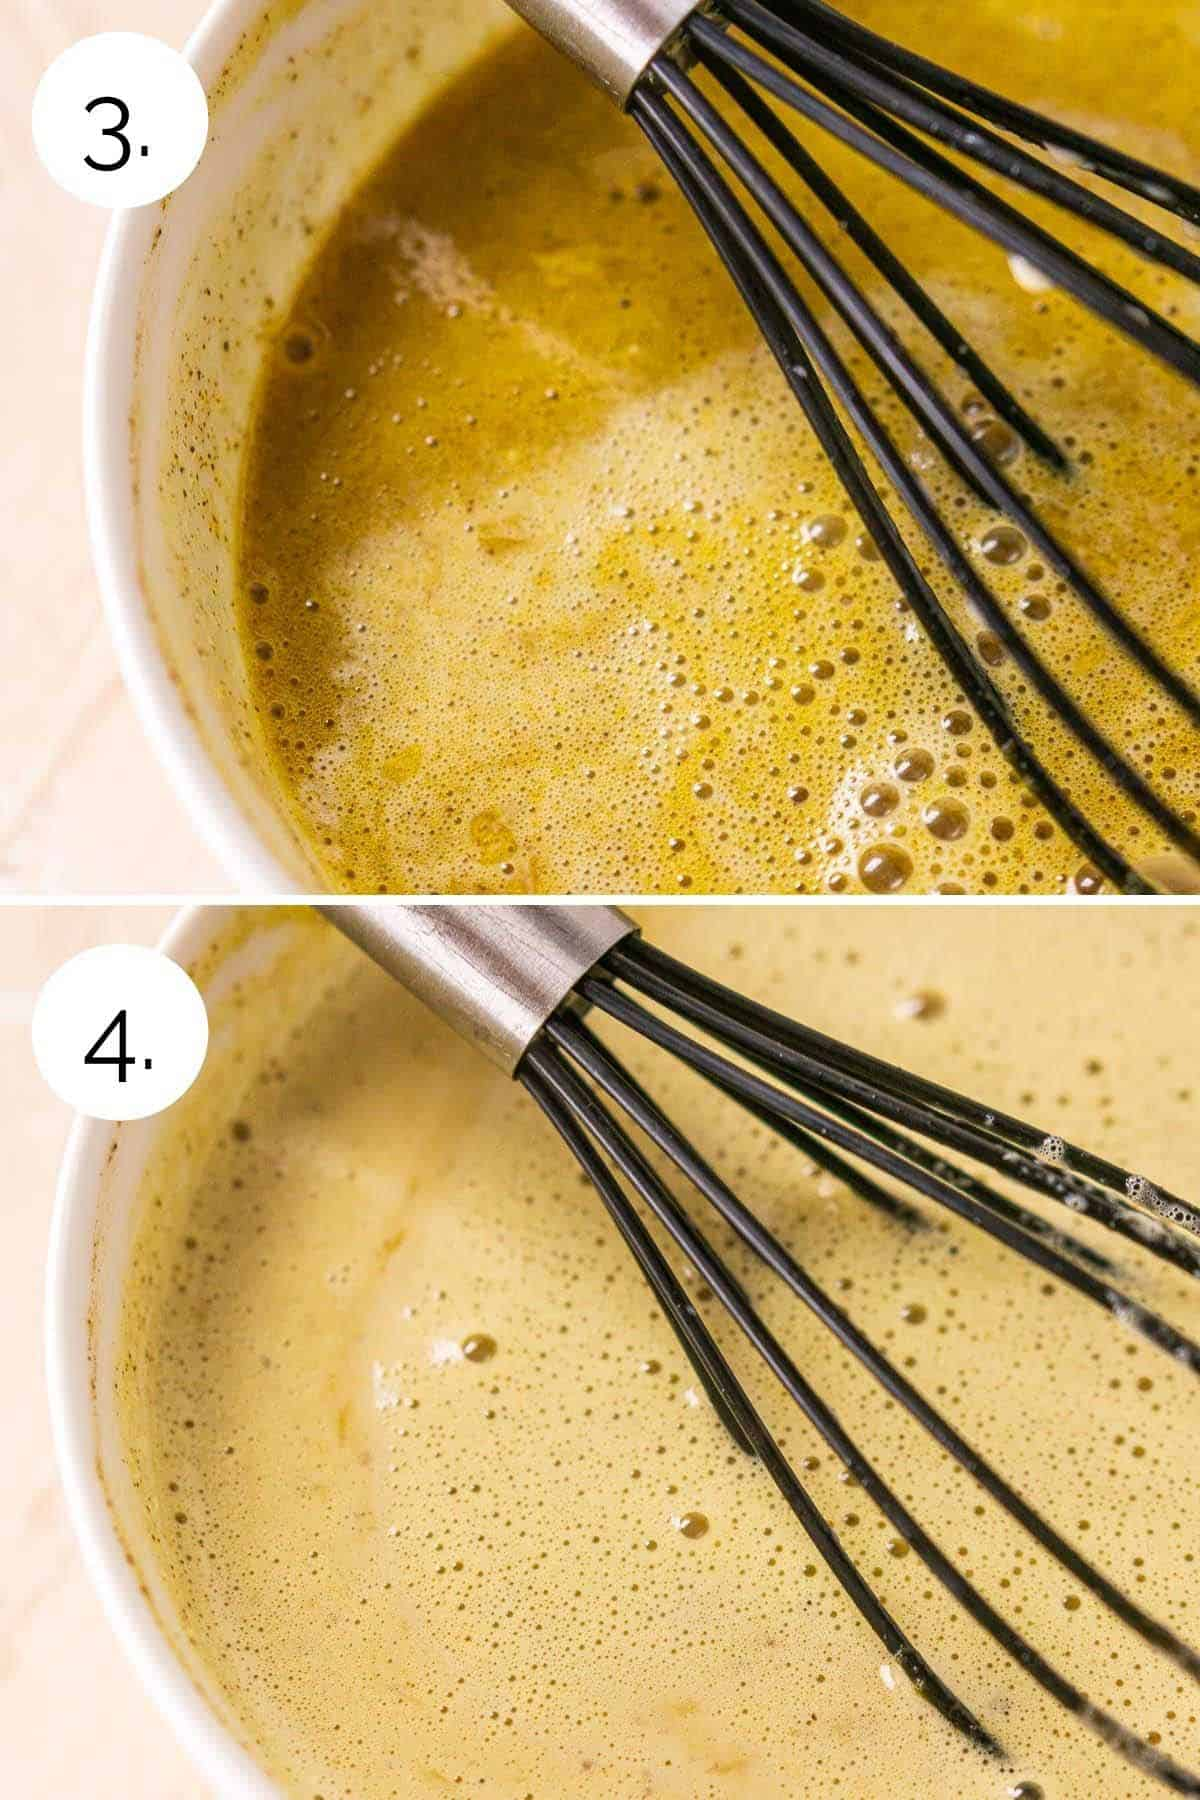 Showing the processing of whisking the cream and egg mixtures together.